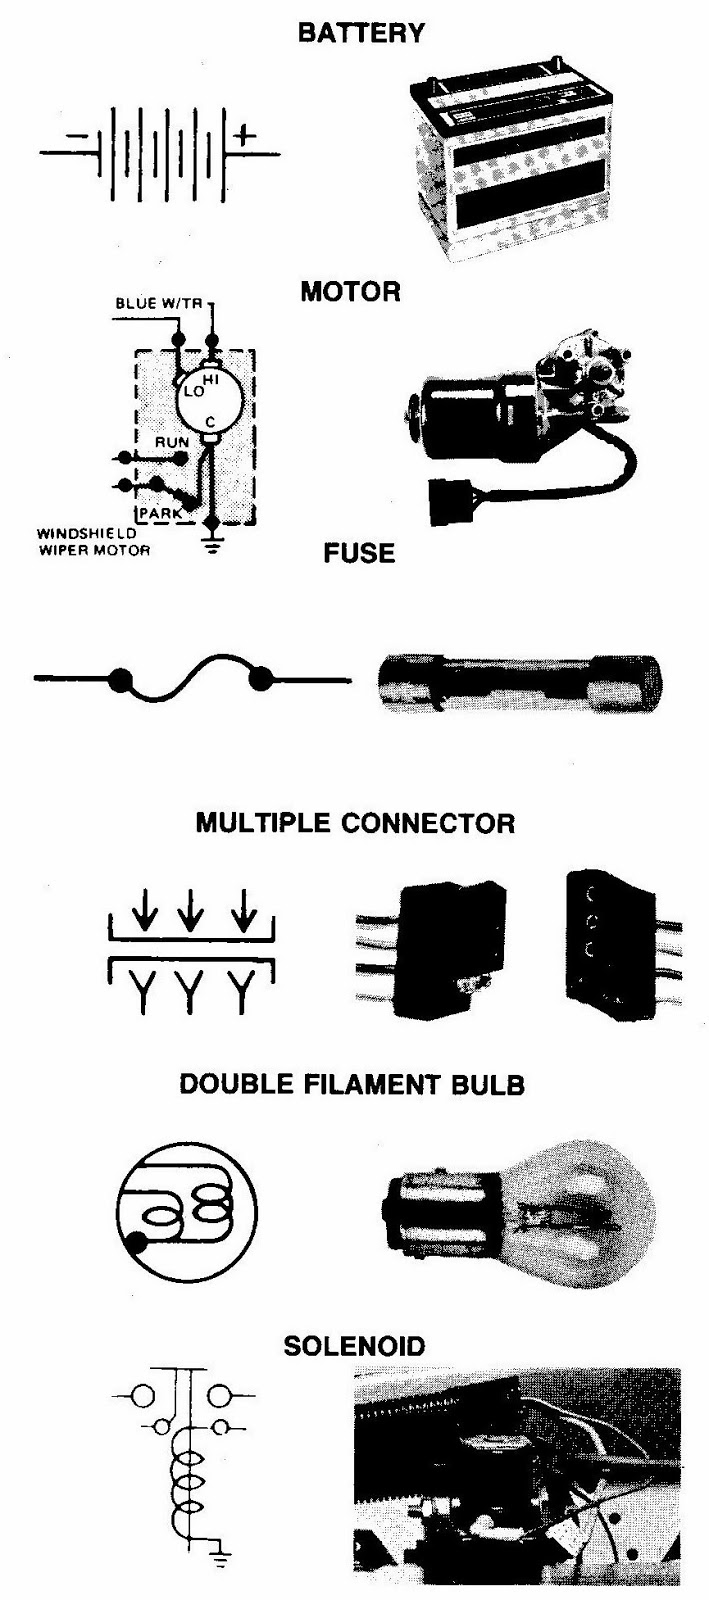 hight resolution of automotive diagram symbols and the actual hardware that they represent